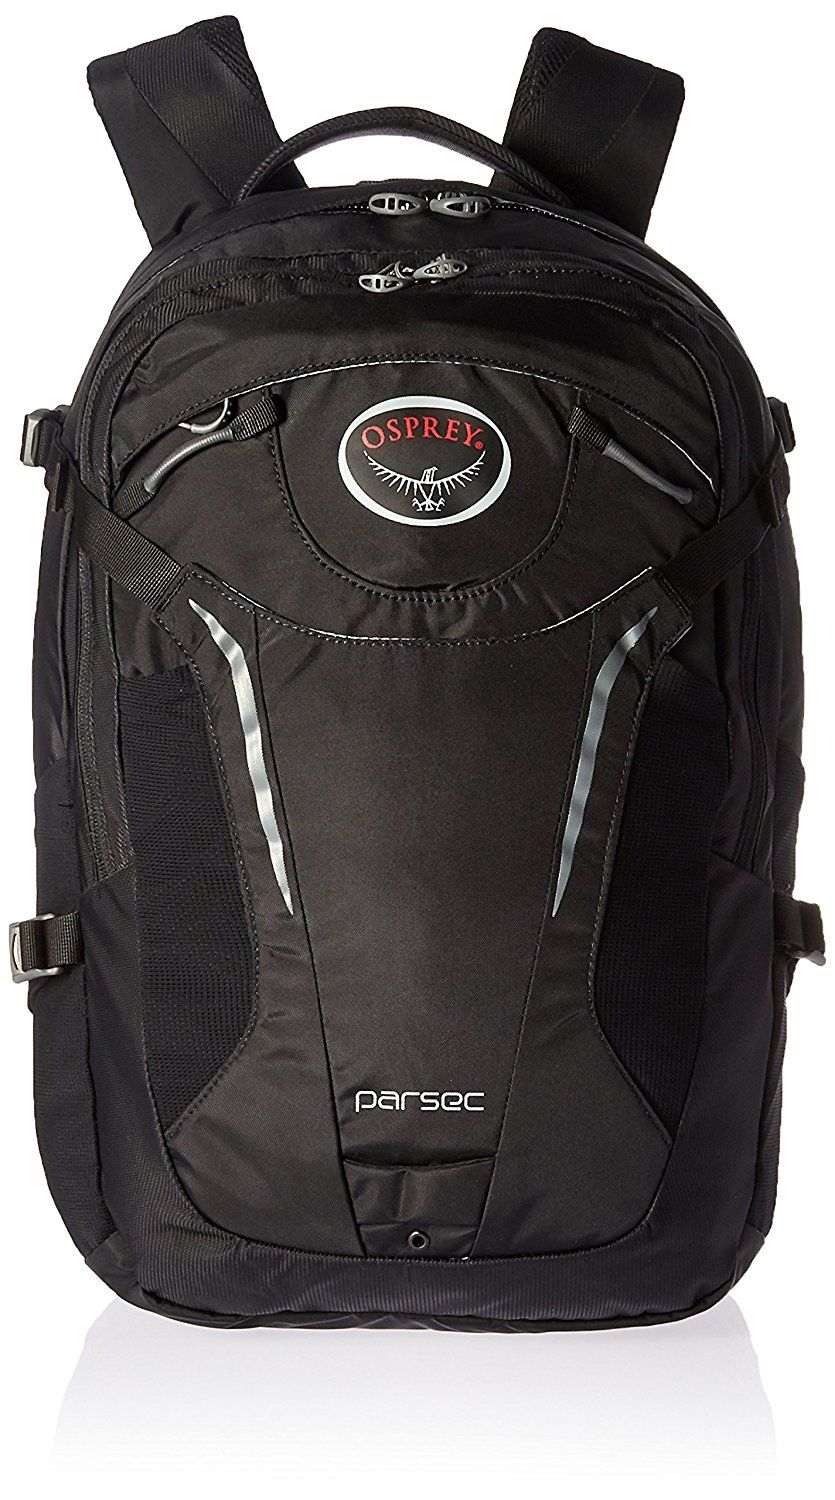 Osprey Pc Backpack You Can Get More Details Here Backng Bags